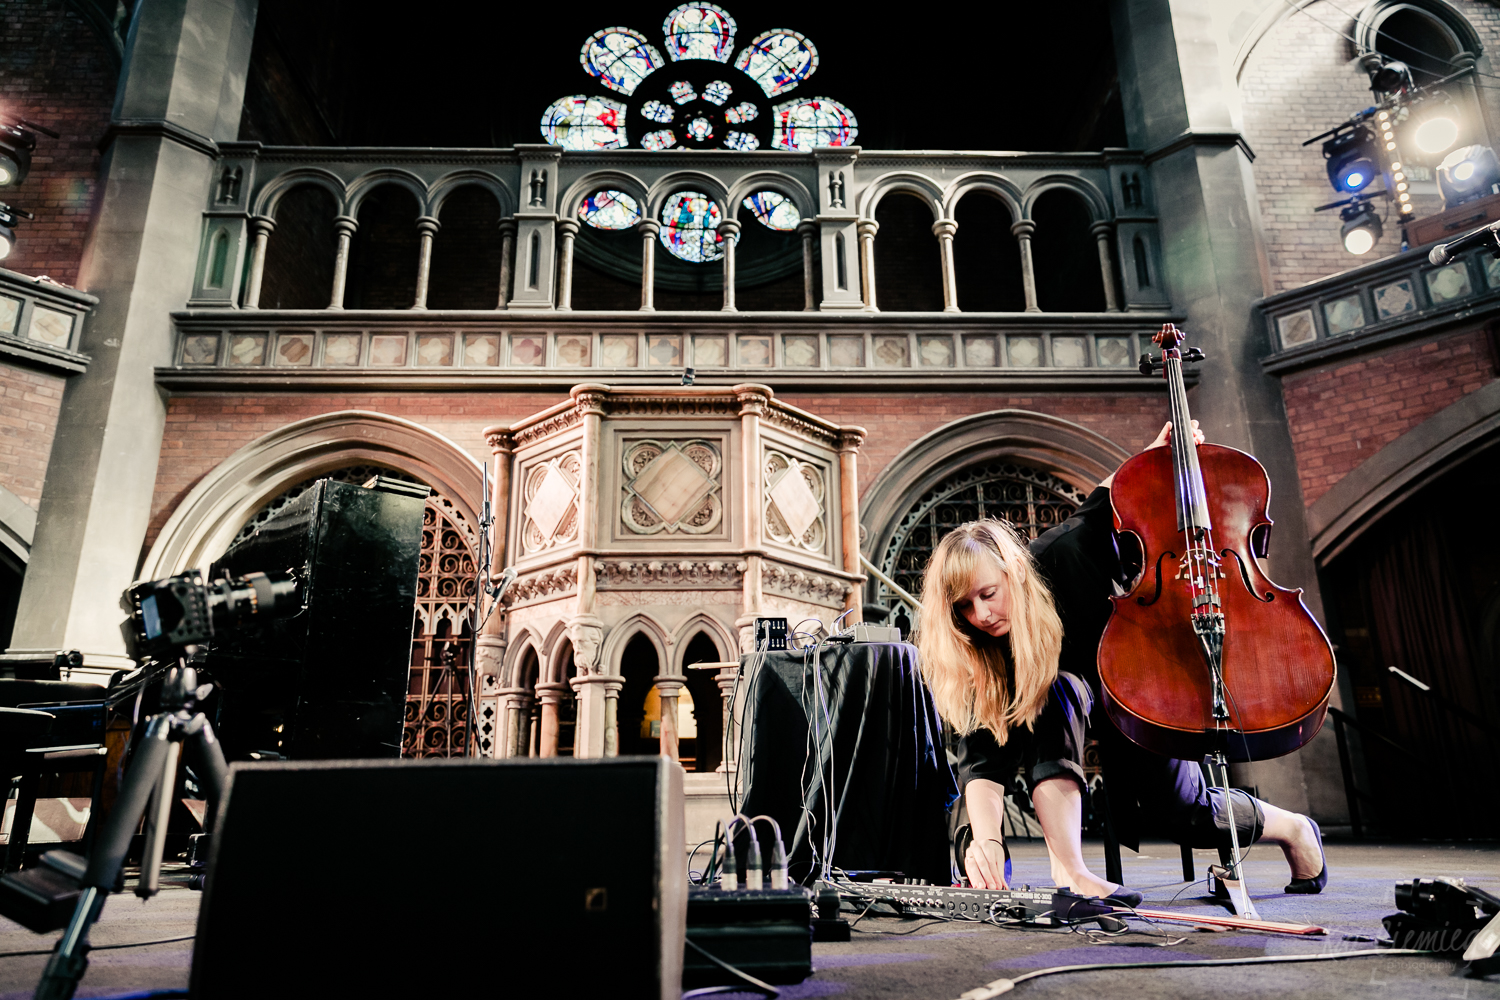 concert, concert photography, daylight music, event photography, Islington, Kat Ciemiega Photography, live music, live music London, London events, London photographer, music event, photographer London, union chapel, Resina, cello, cellist